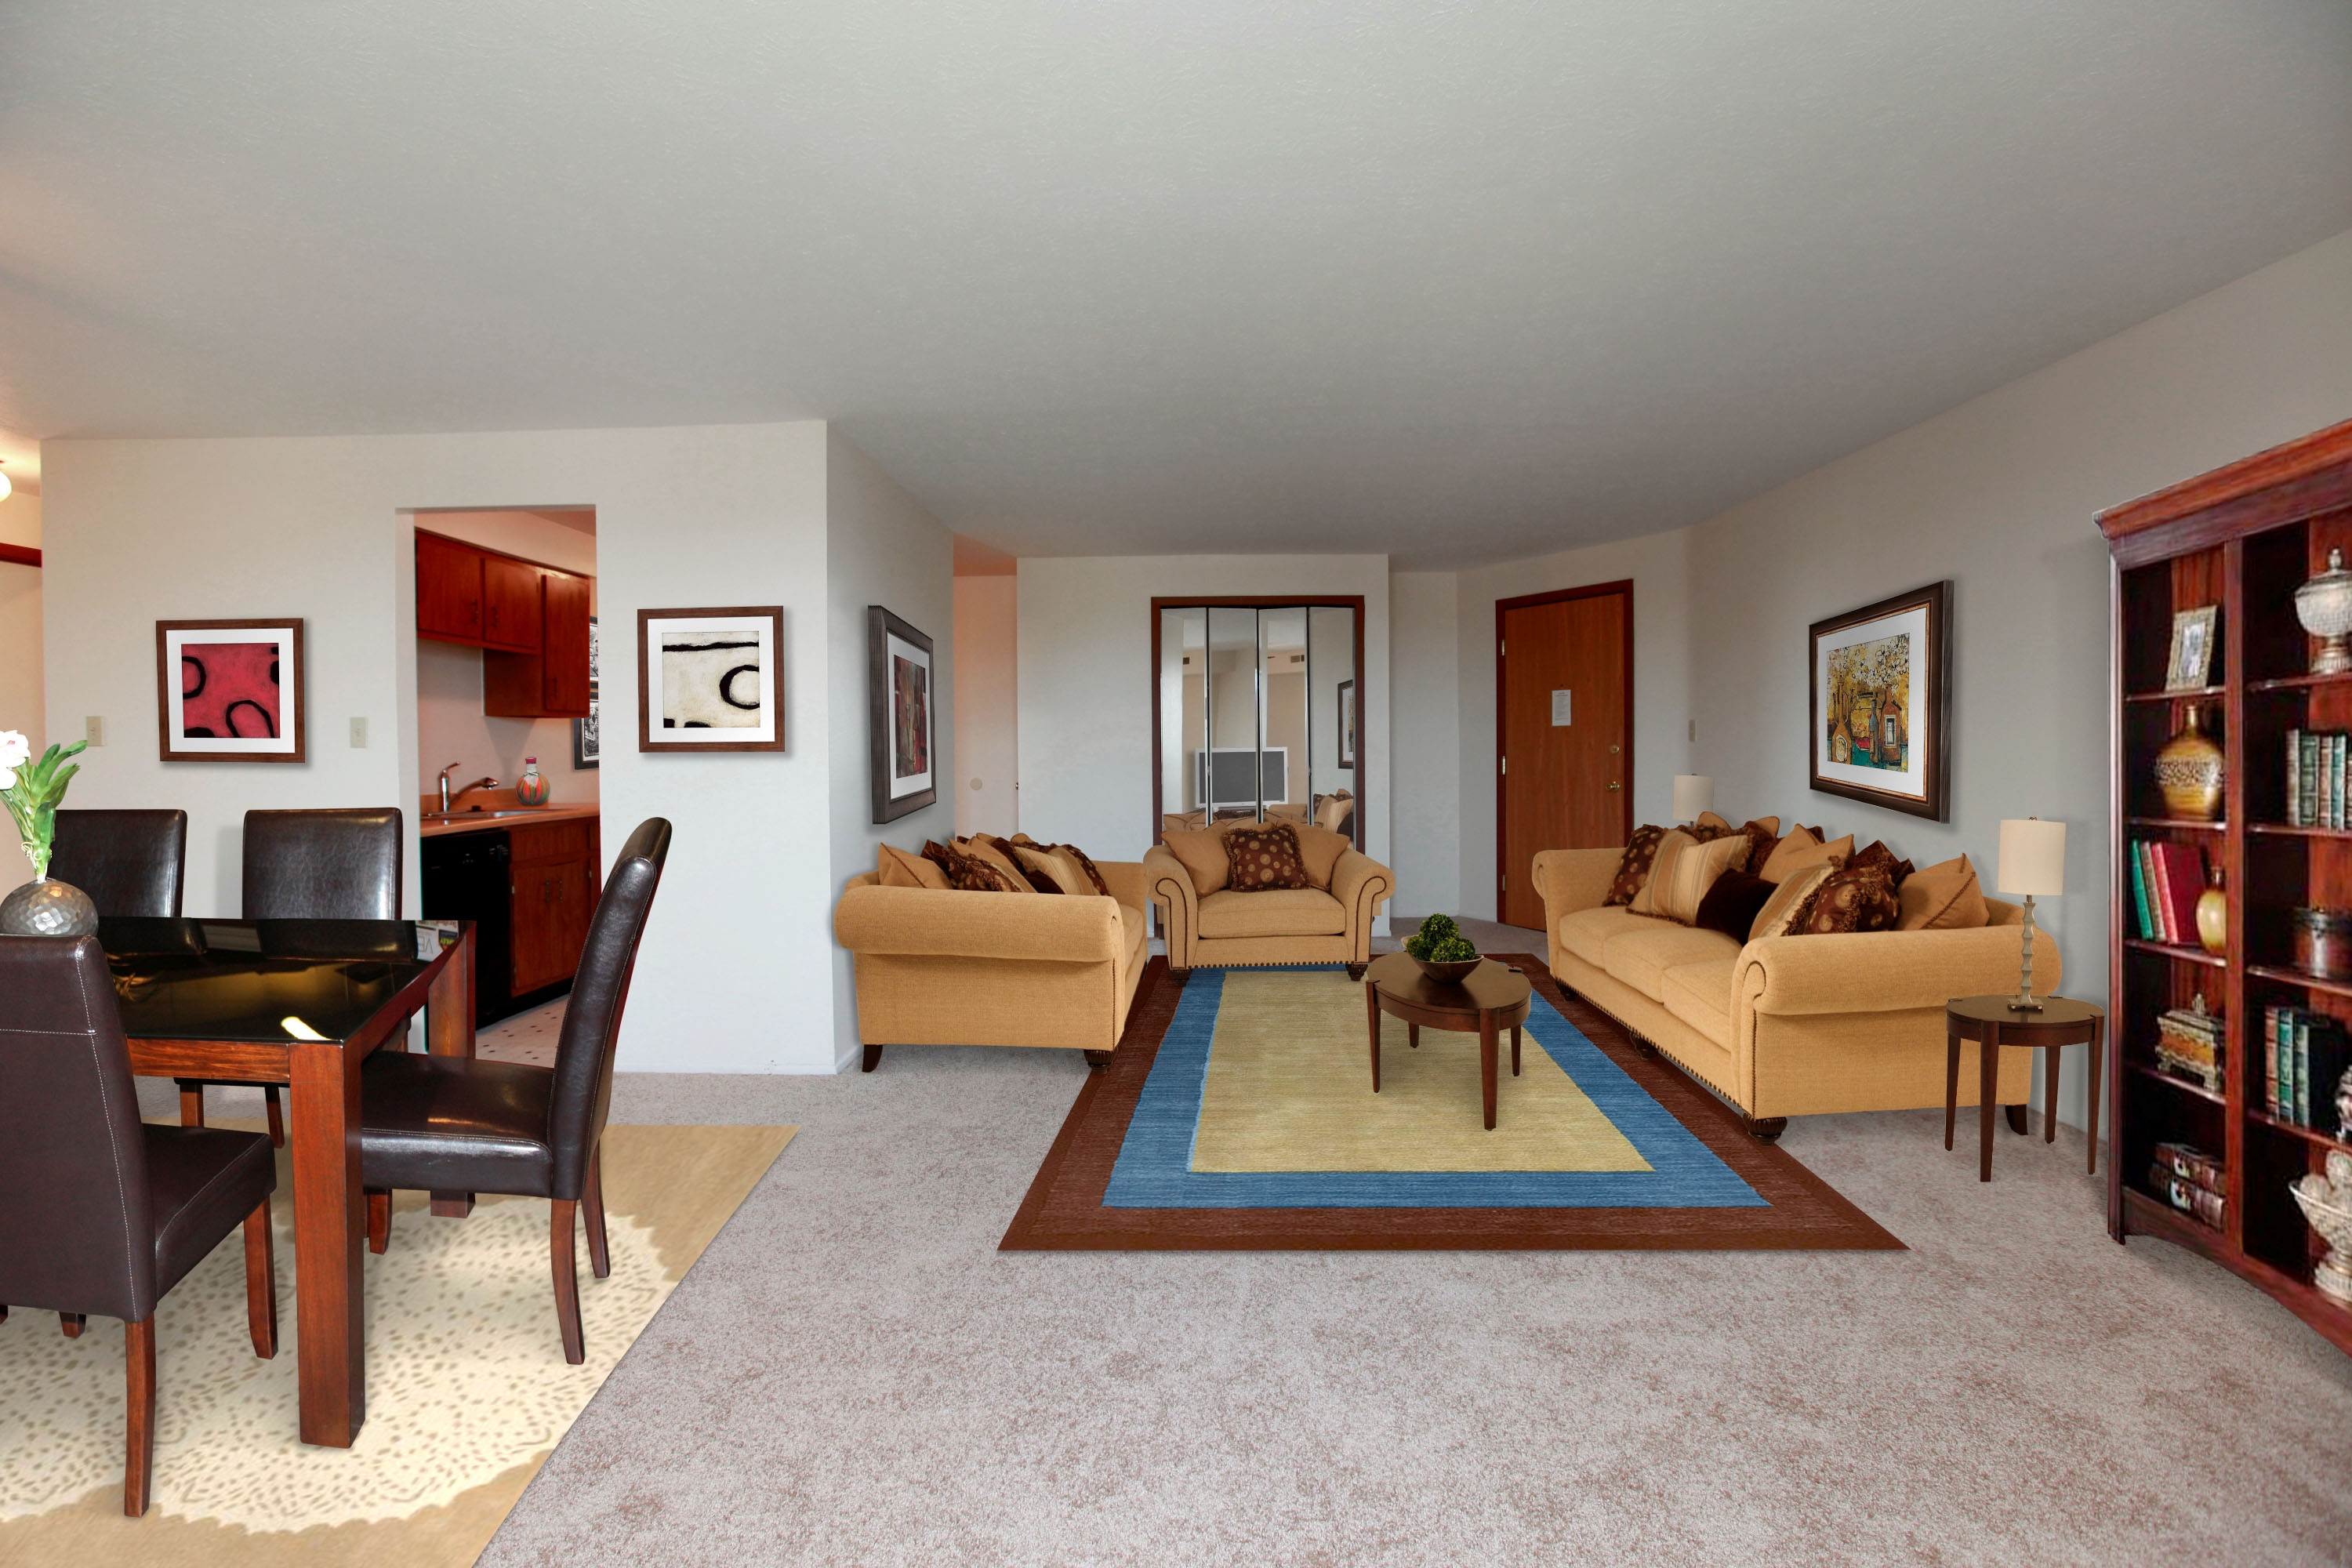 2D Living Room Furnished at the Greenridge on Euclid Apartments in Euclid, OH